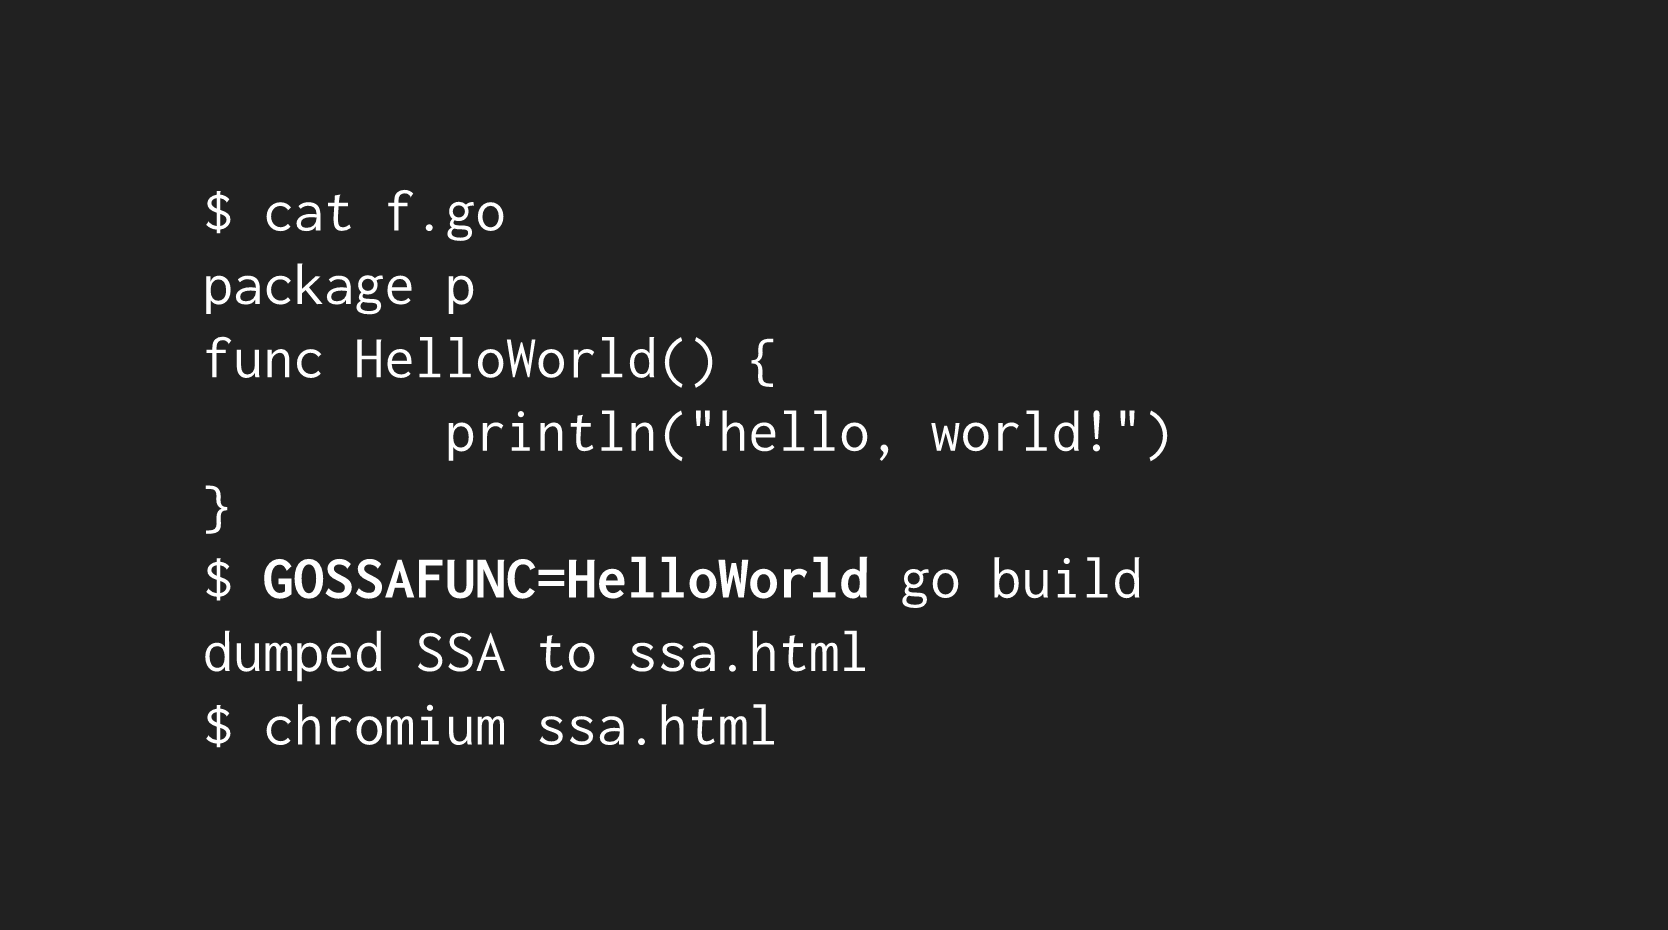 compiler ssa command